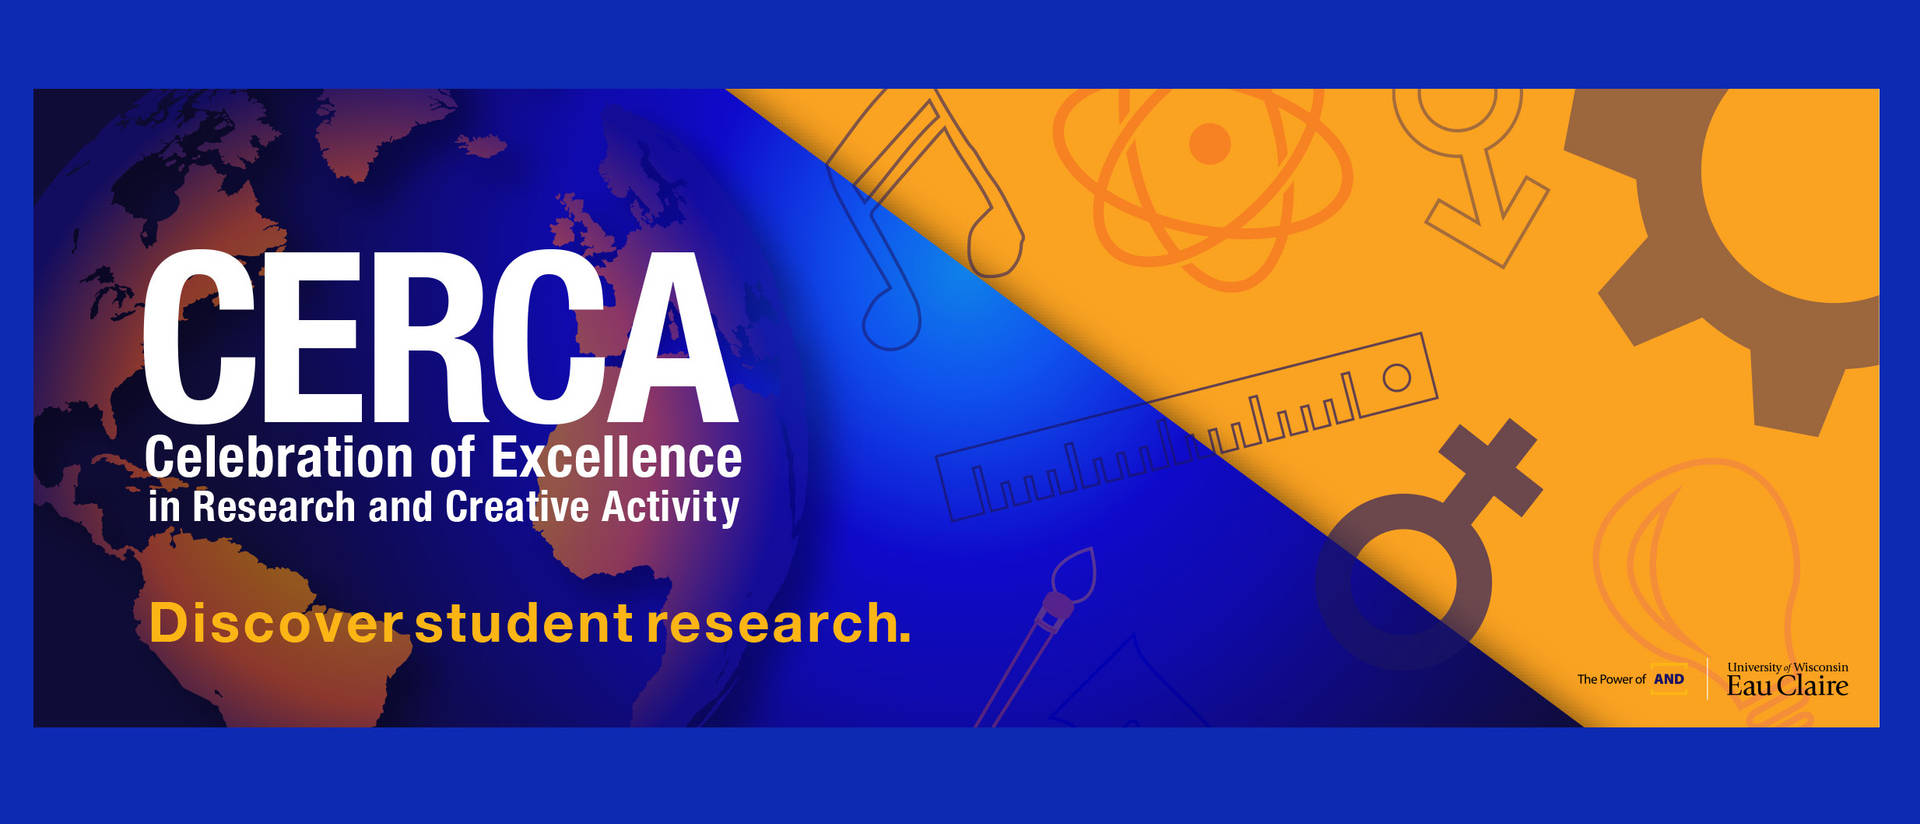 CERCA, A Celebration of Excellence in Research and Creative Activity